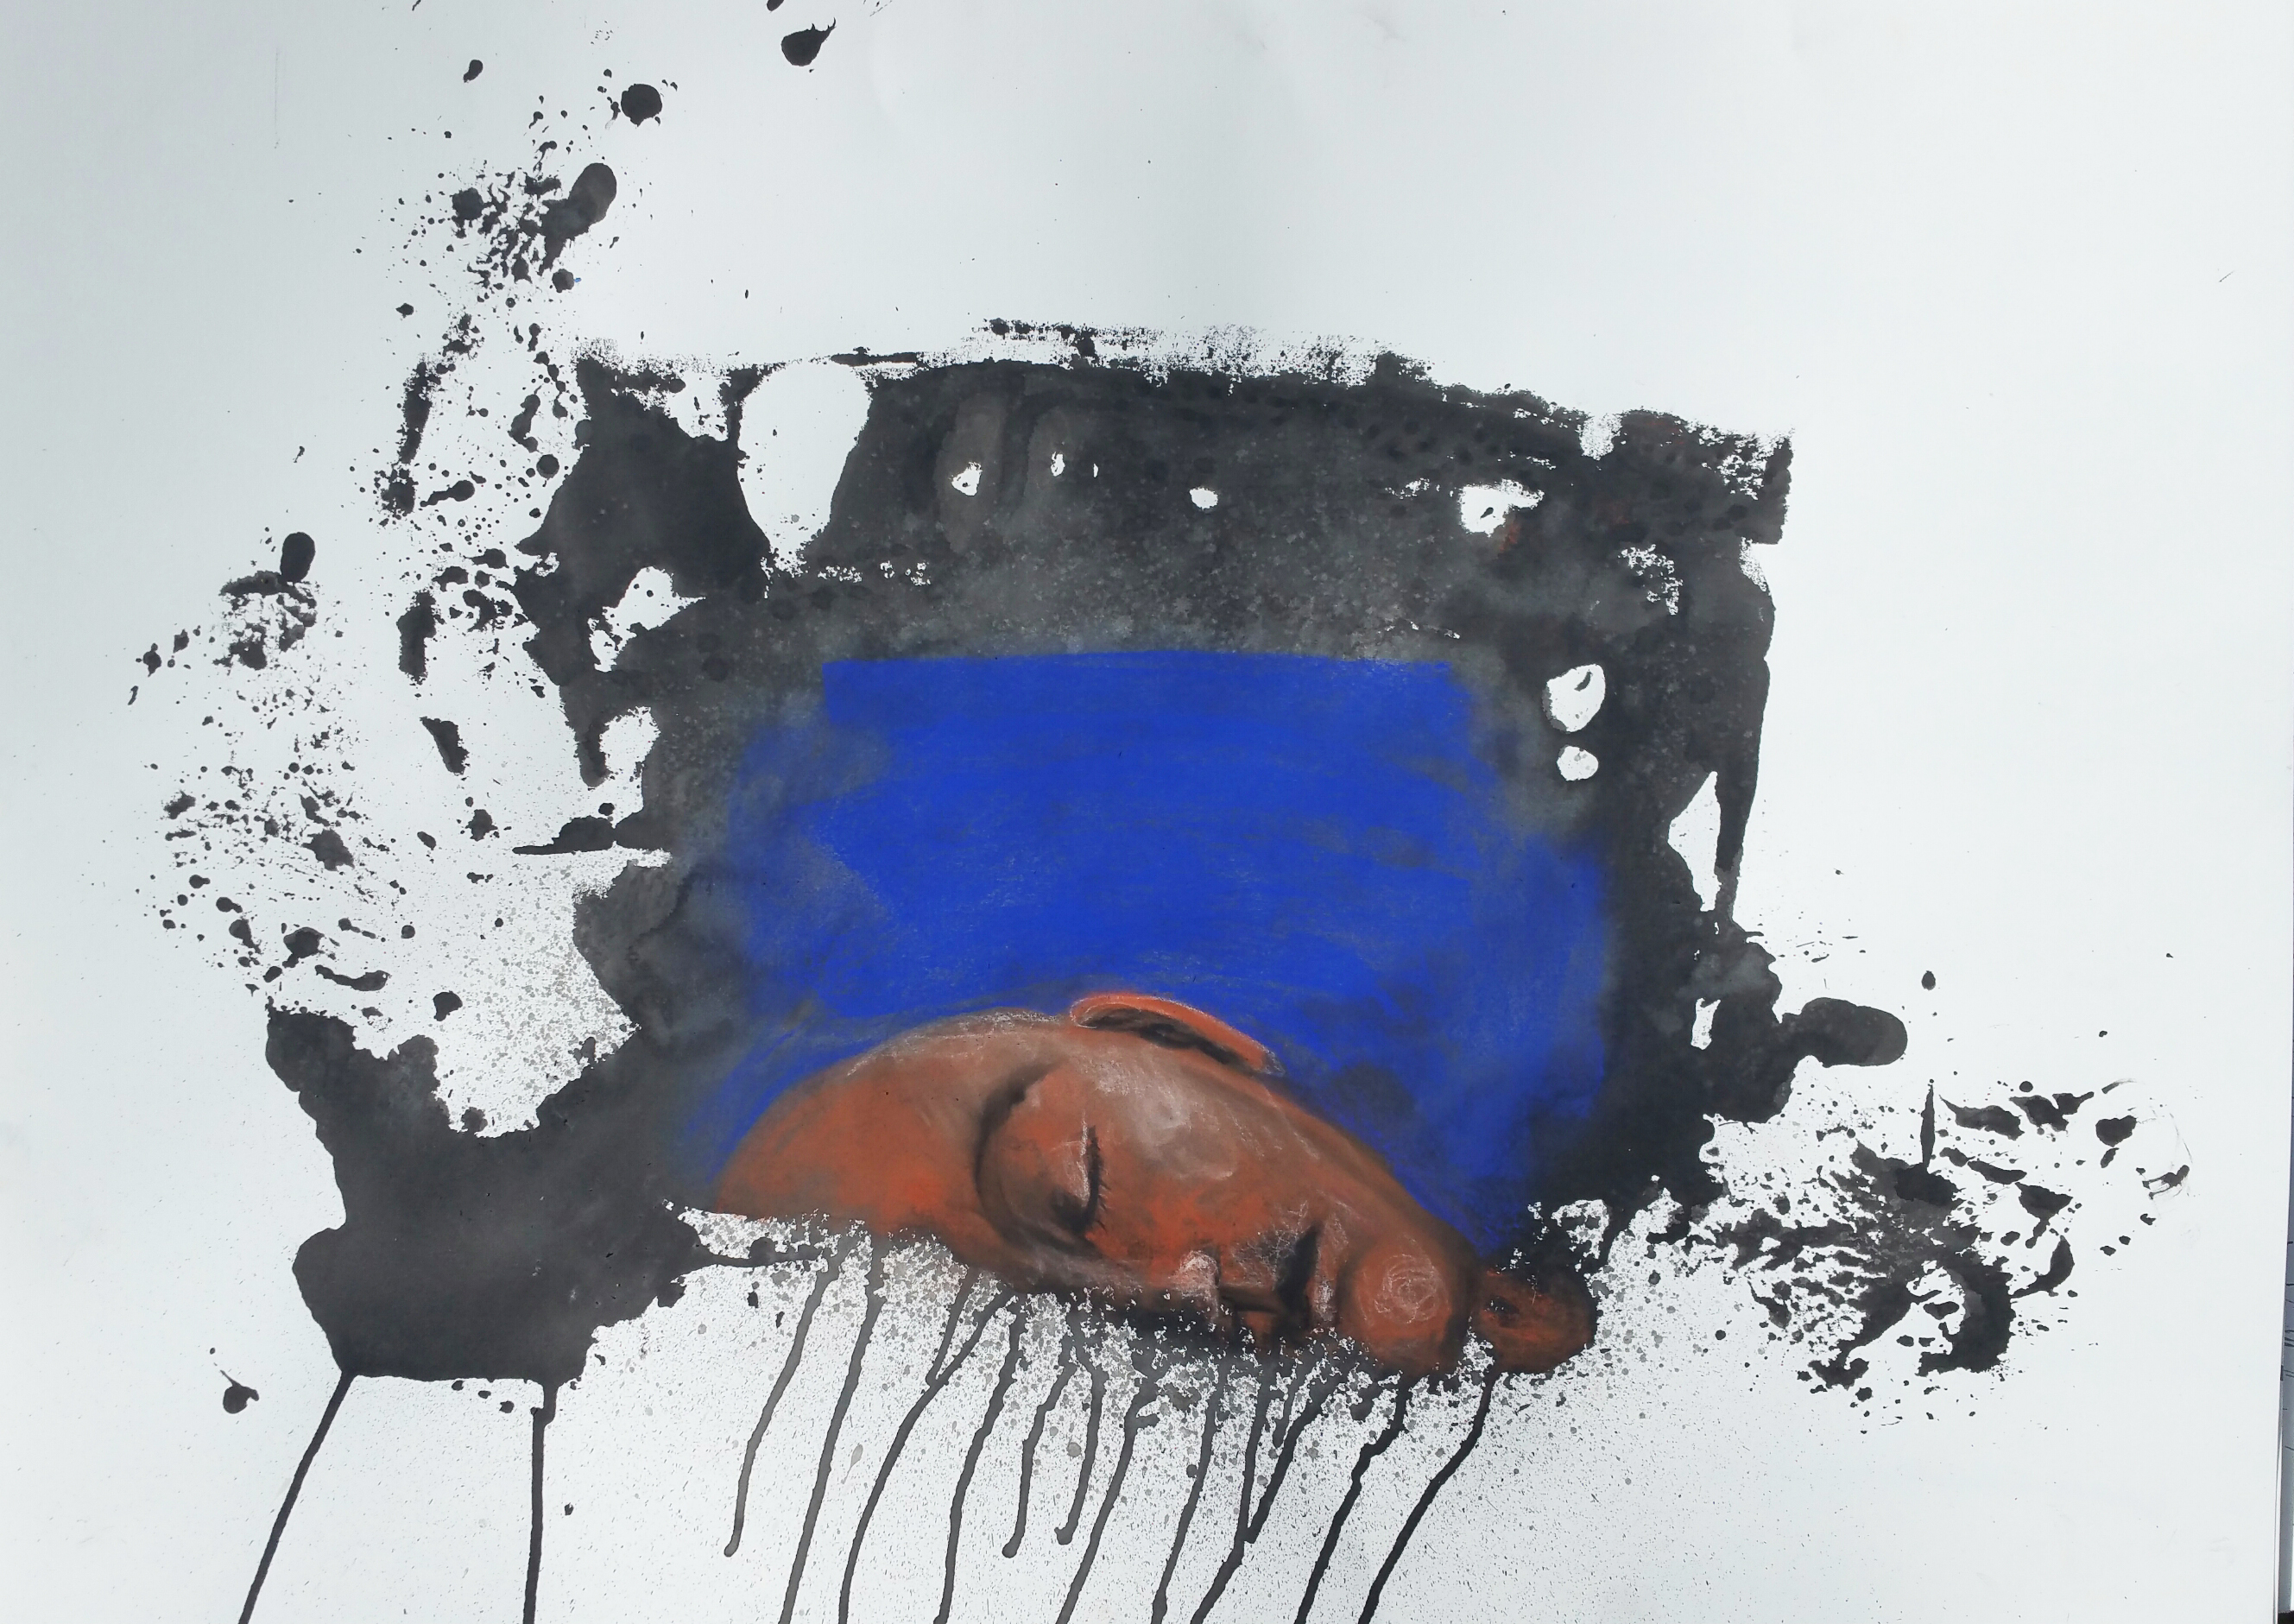 6. Una Kim, Silence in Blue, 22 inches X 30 inches, Ink and charcoal on paper, 2015